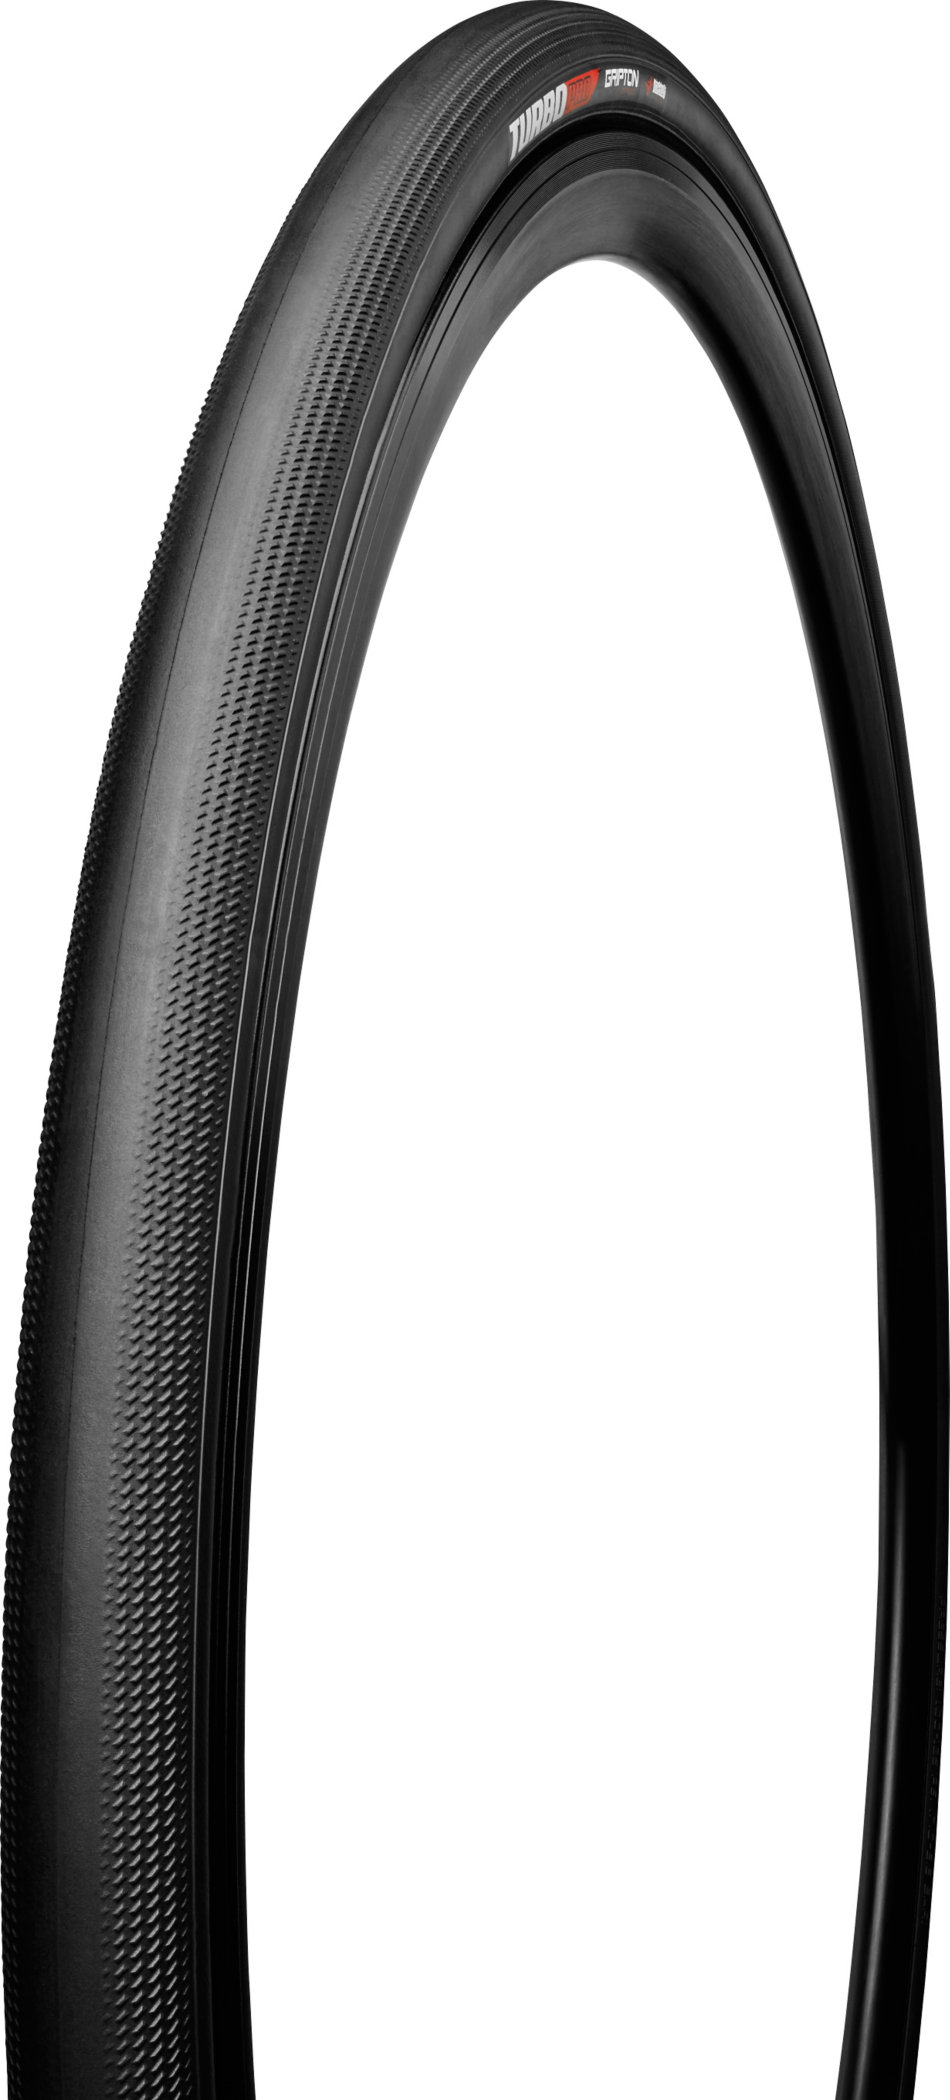 SPECIALIZED TURBO PRO TIRE BLK 700X24C - SPECIALIZED TURBO PRO TIRE BLK 700X24C